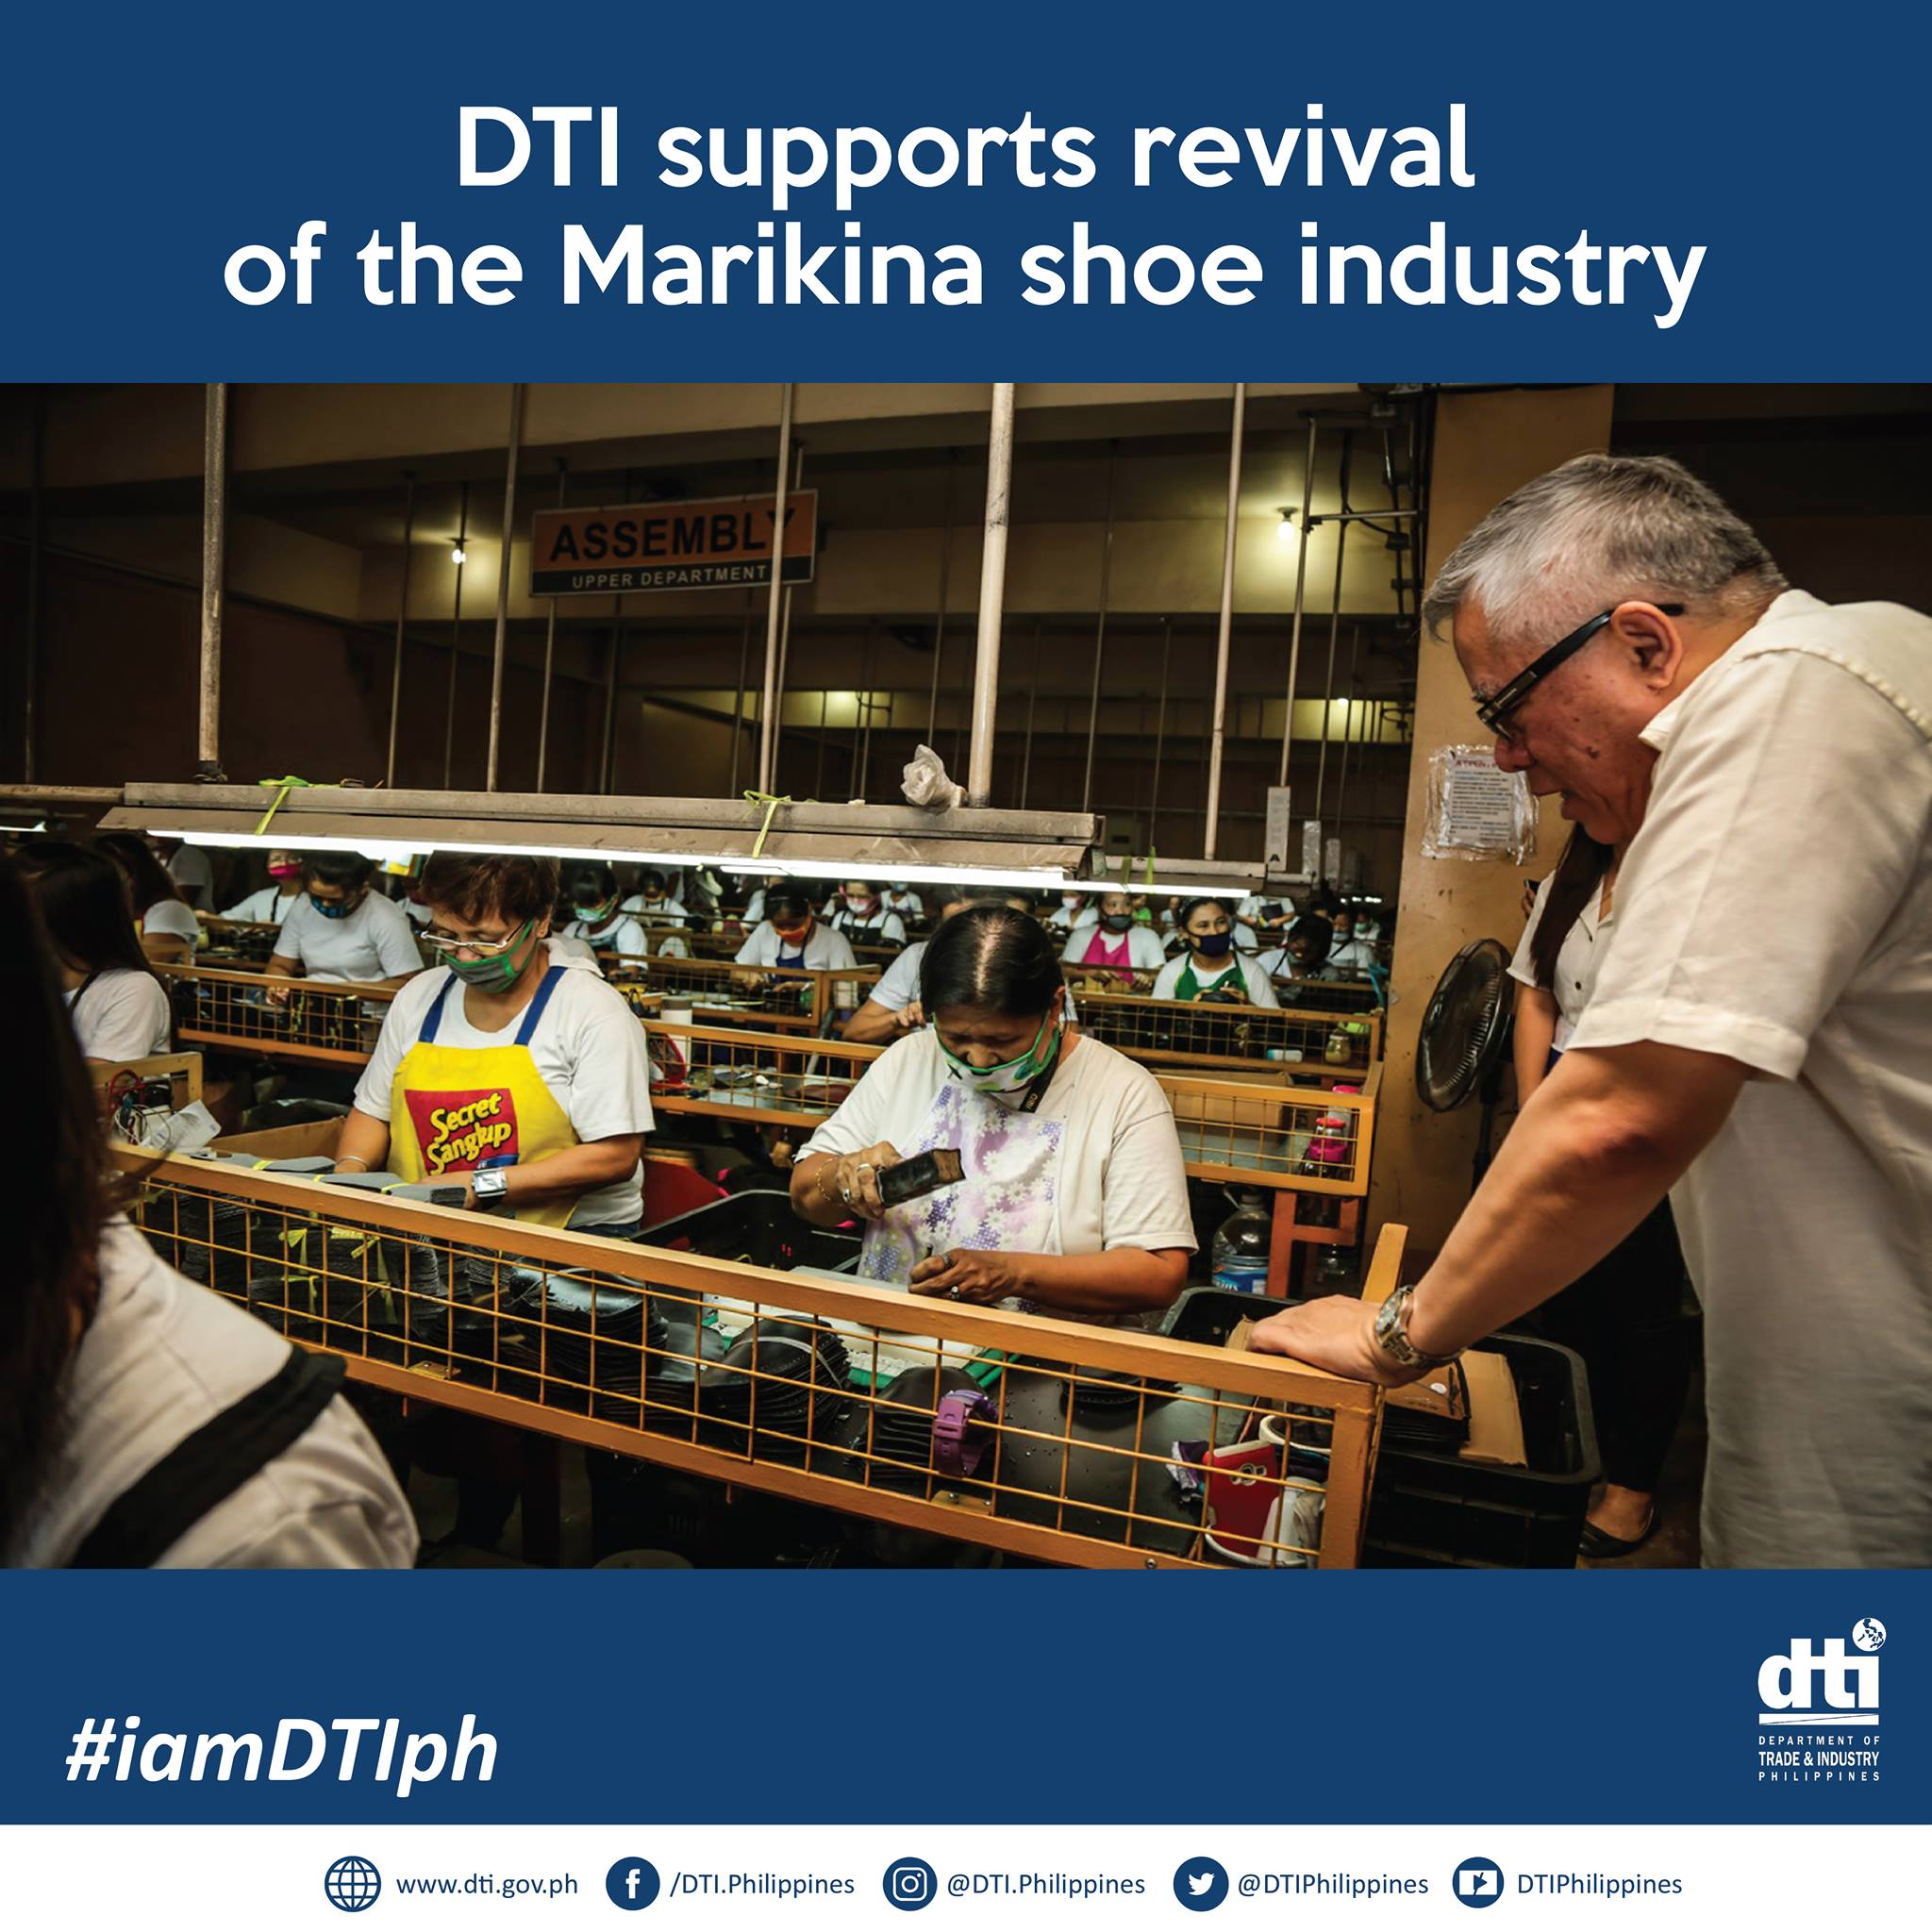 marikina shoe industry Have your shoes made in marikina, the shoemaking capital of the philippines  she practically is one of the gatekeepers of the marikina shoe industry.